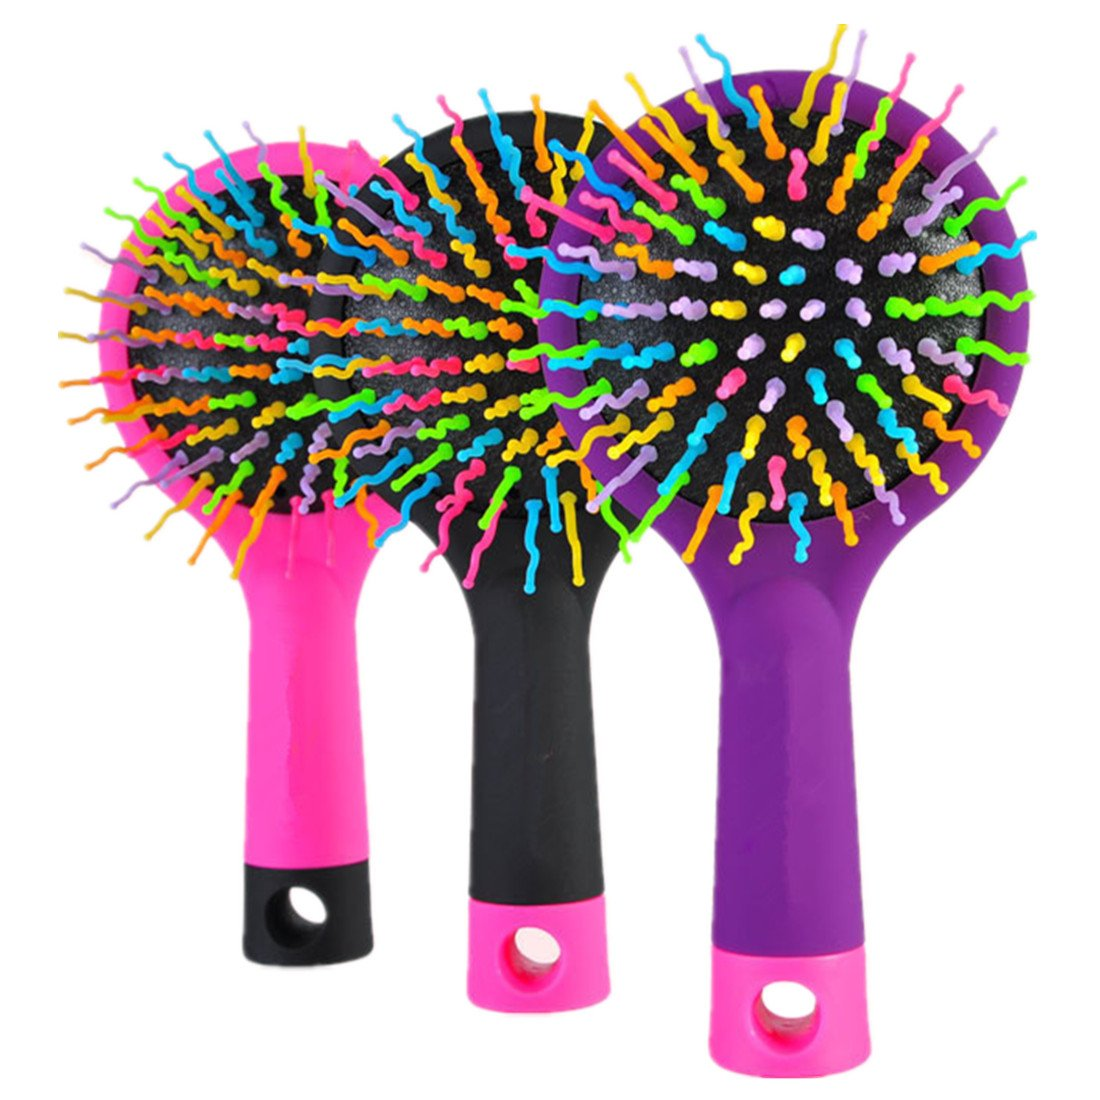 Detangling Brush - Glide Thru Detangler Hair Comb or Brush - No More Tangle - Adults & Kids - Pink Crave Naturals 820103187893